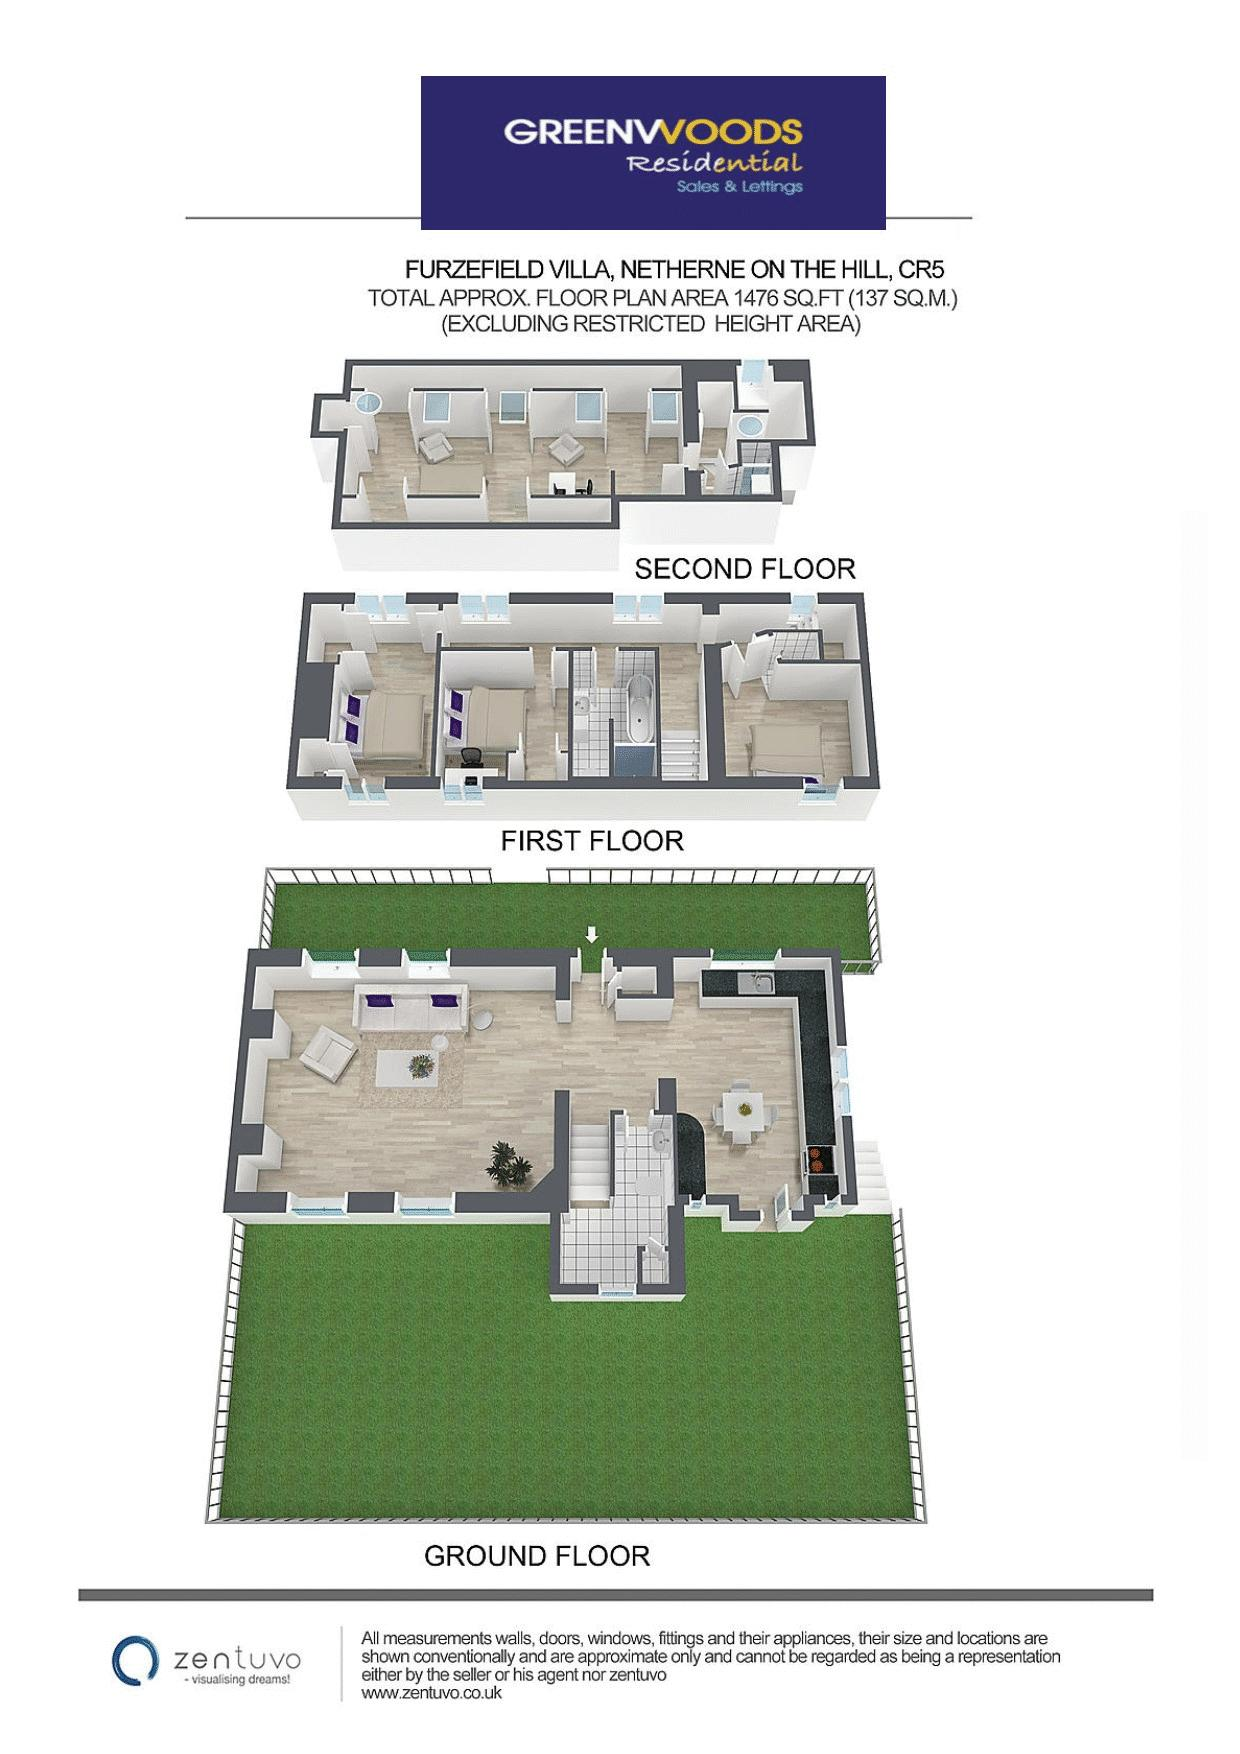 3d Floor plan Greenwoods Res